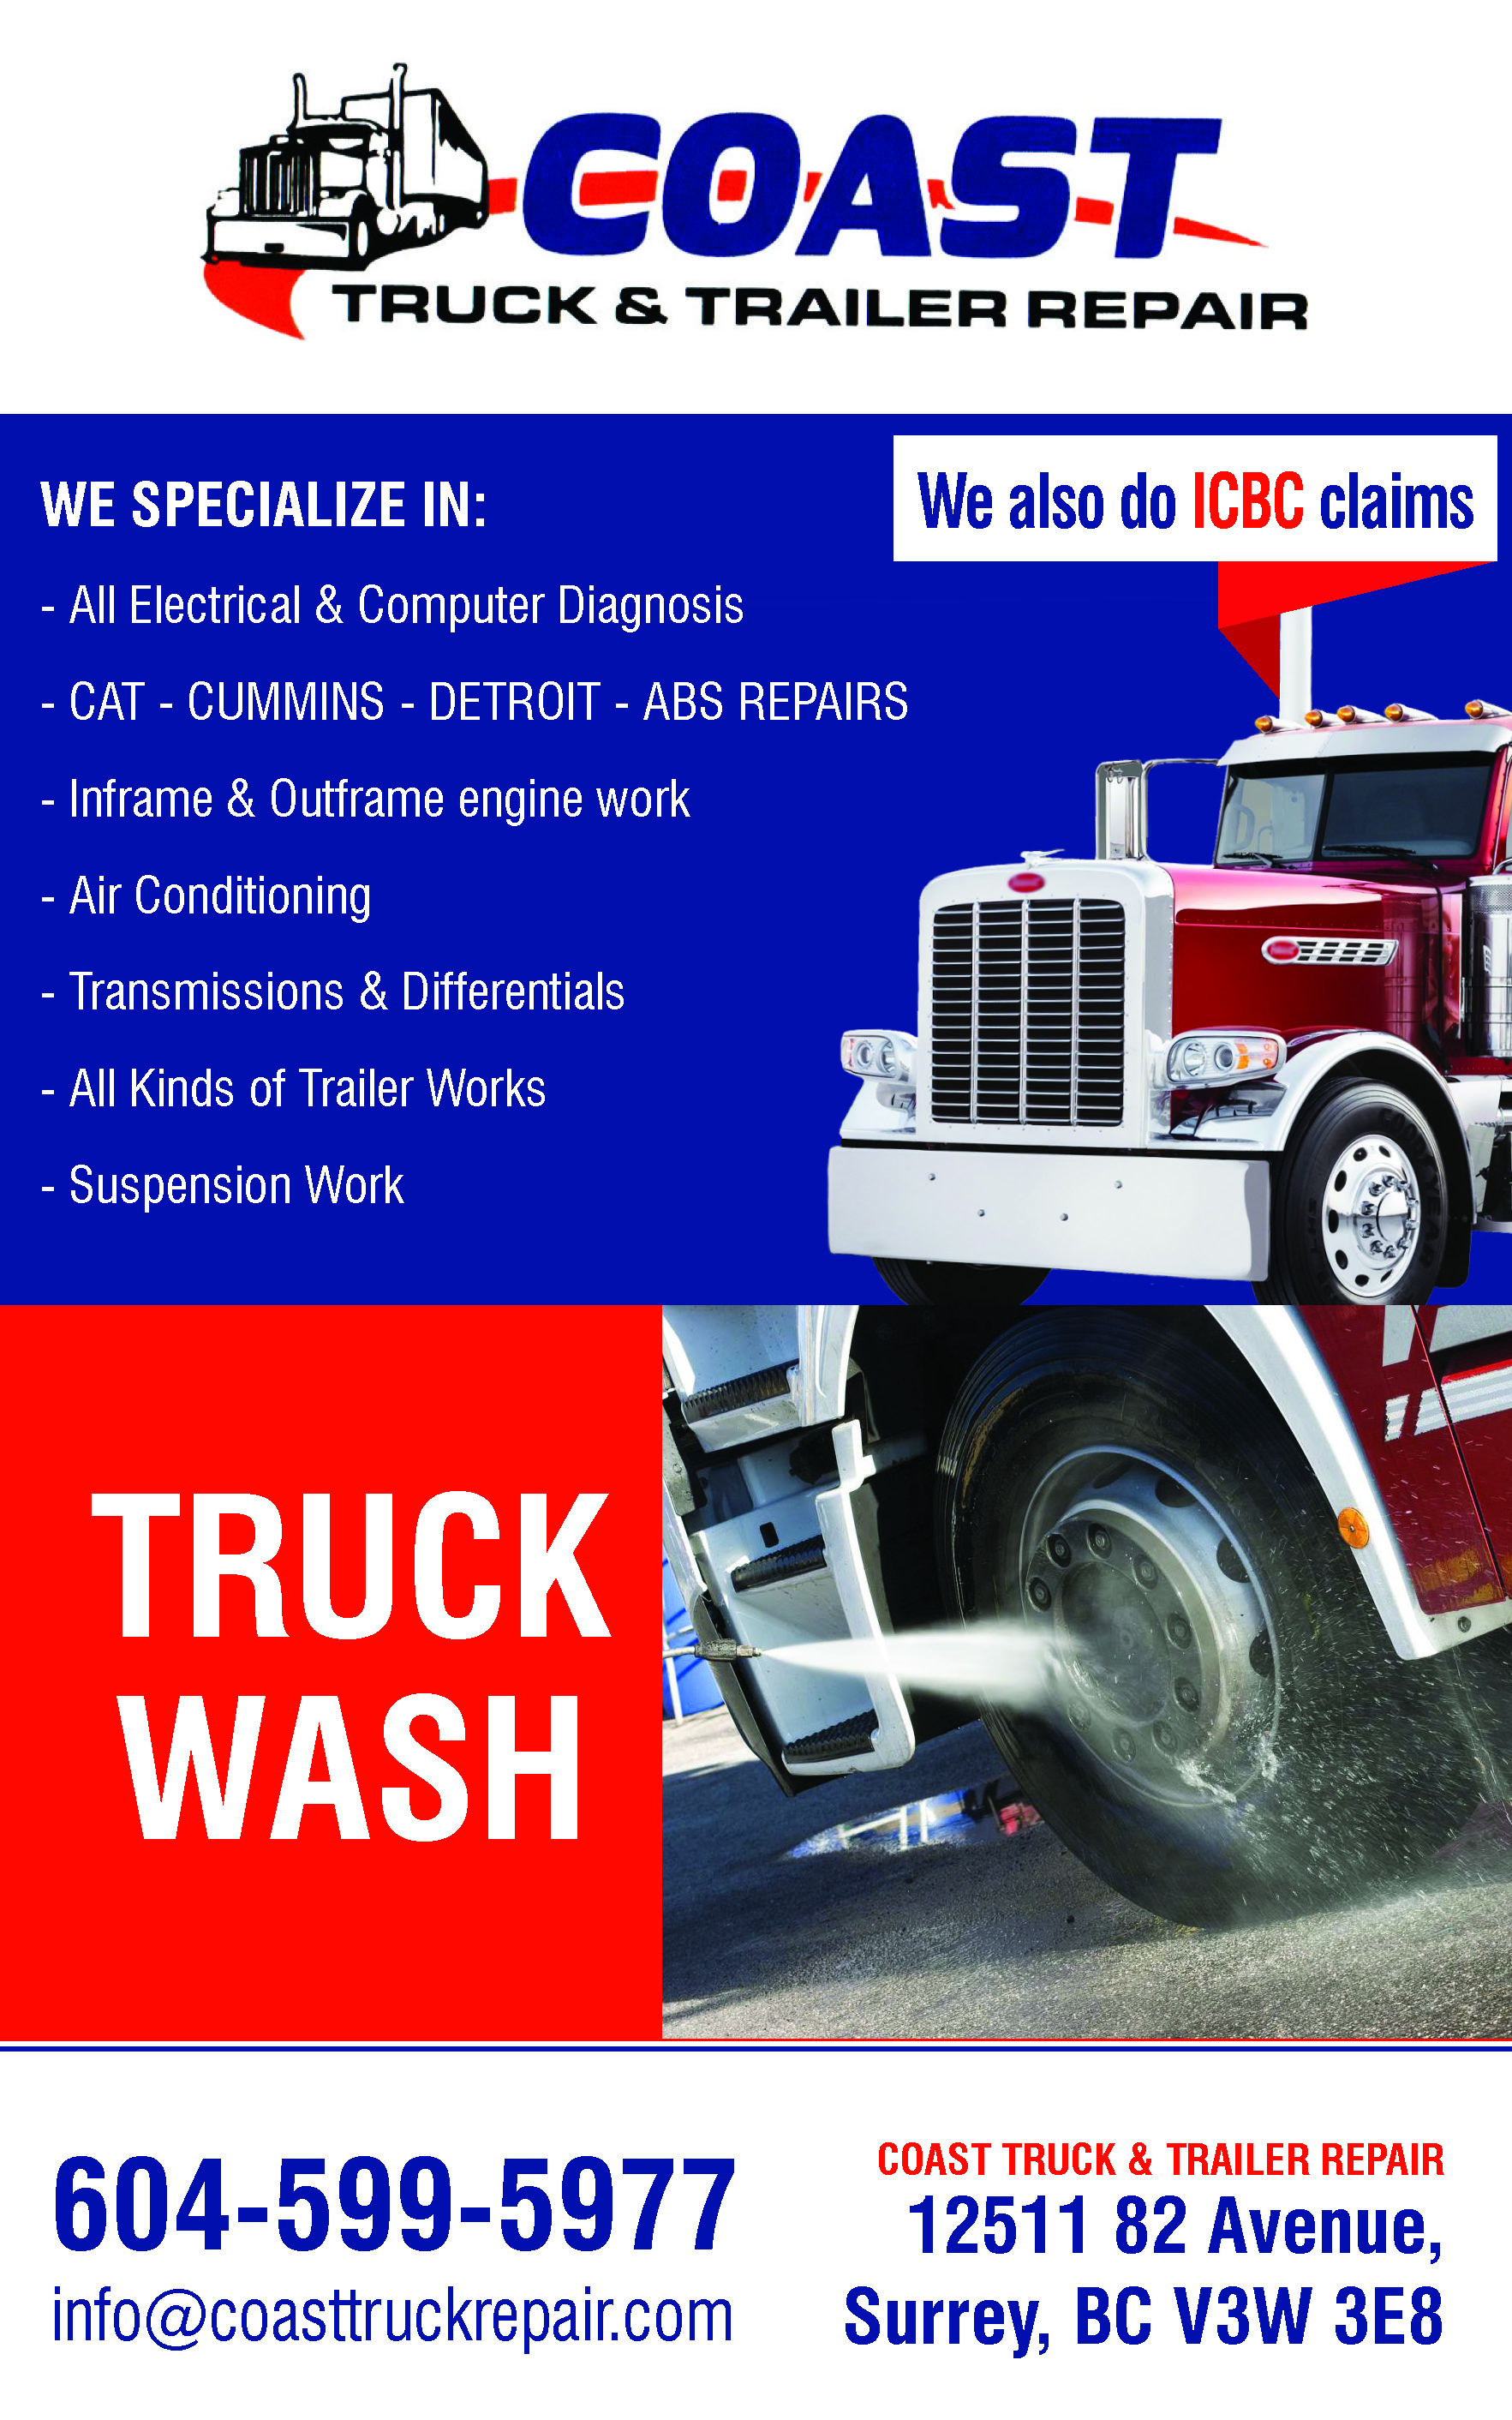 coast-truck-trailer-repair-ltd-2zvlkLz.jpeg